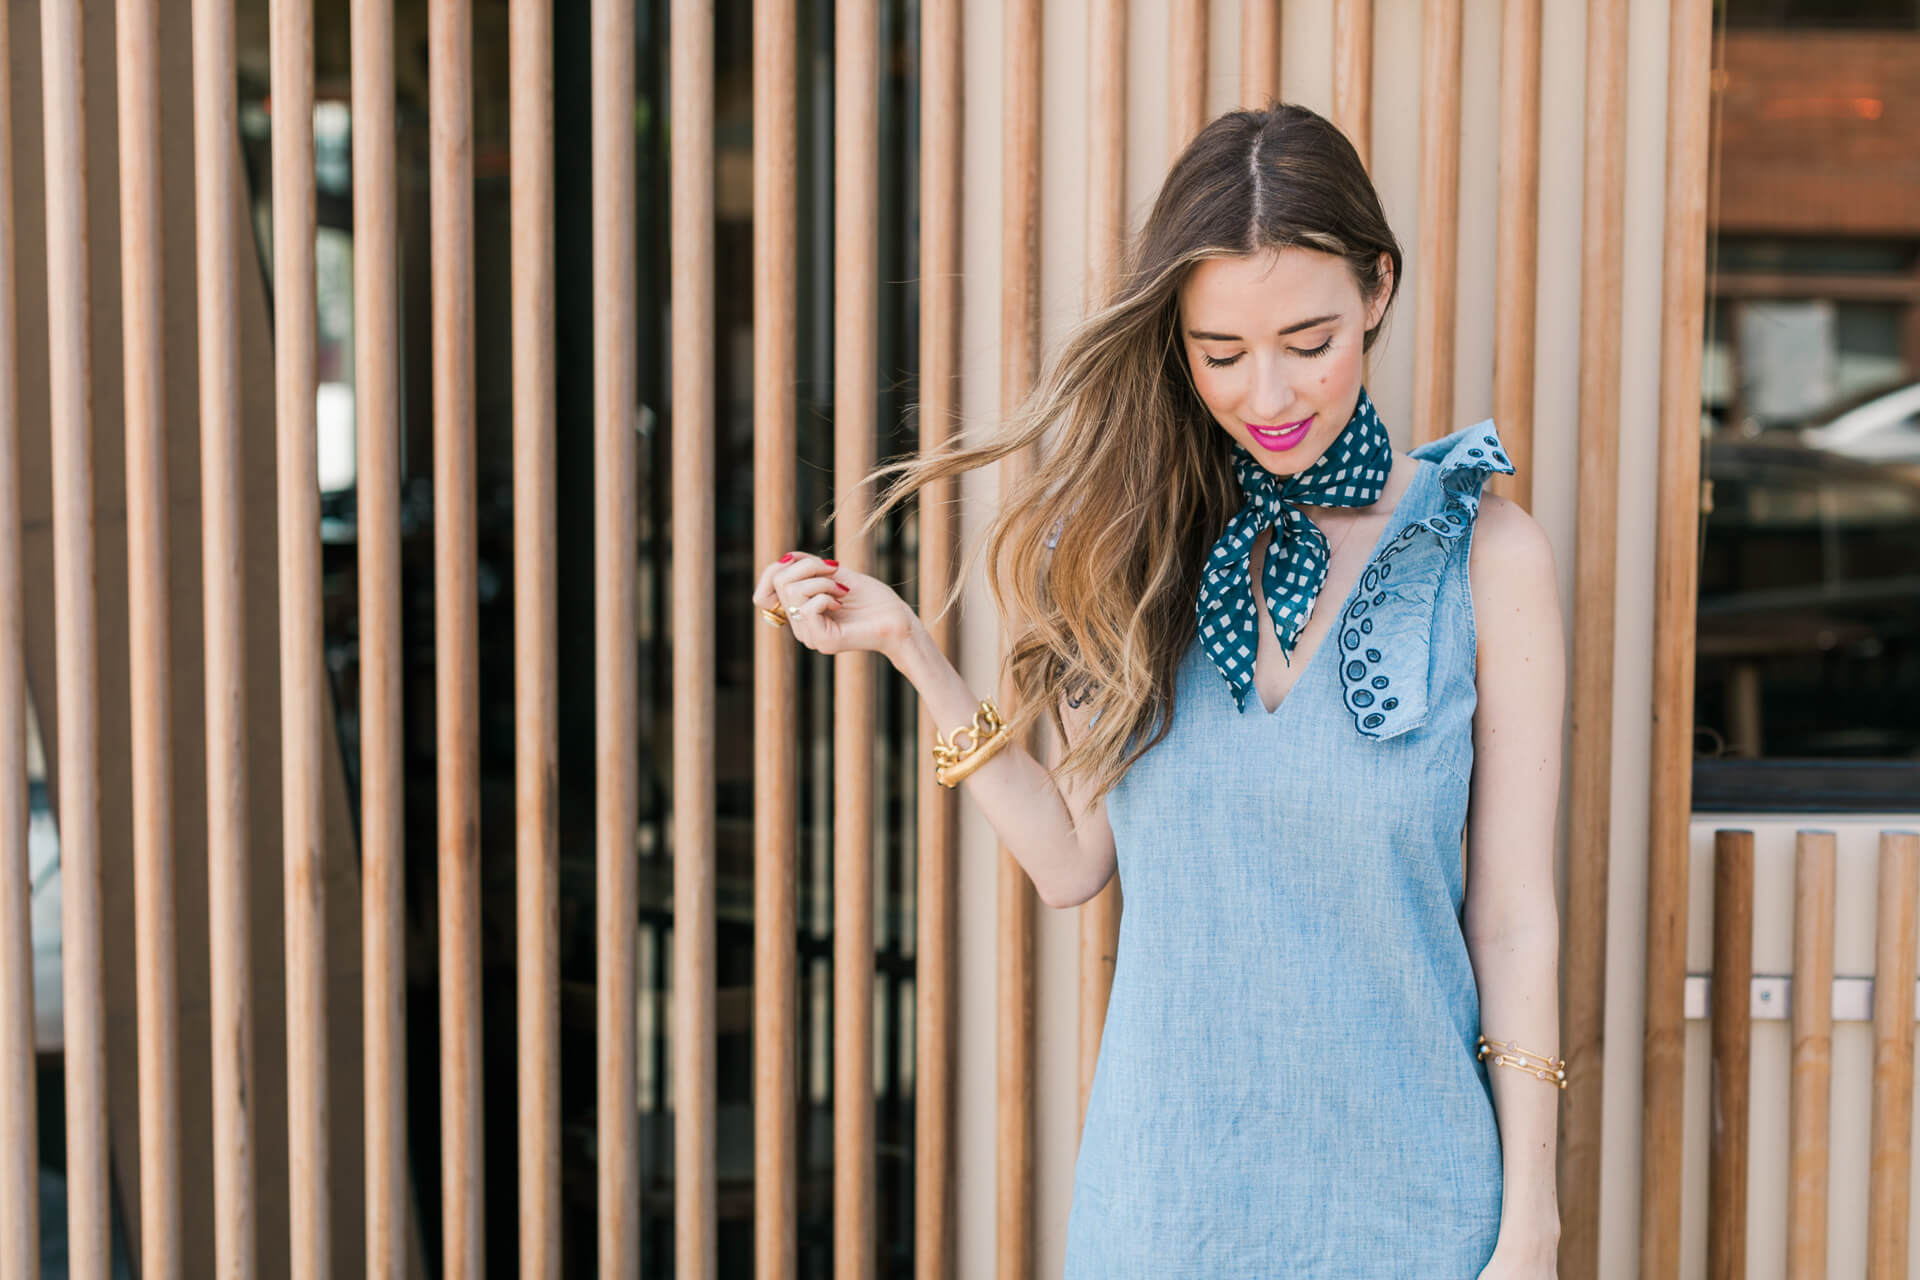 easy waves and makeup to pair with this chambray outfit - M Loves M @marmar